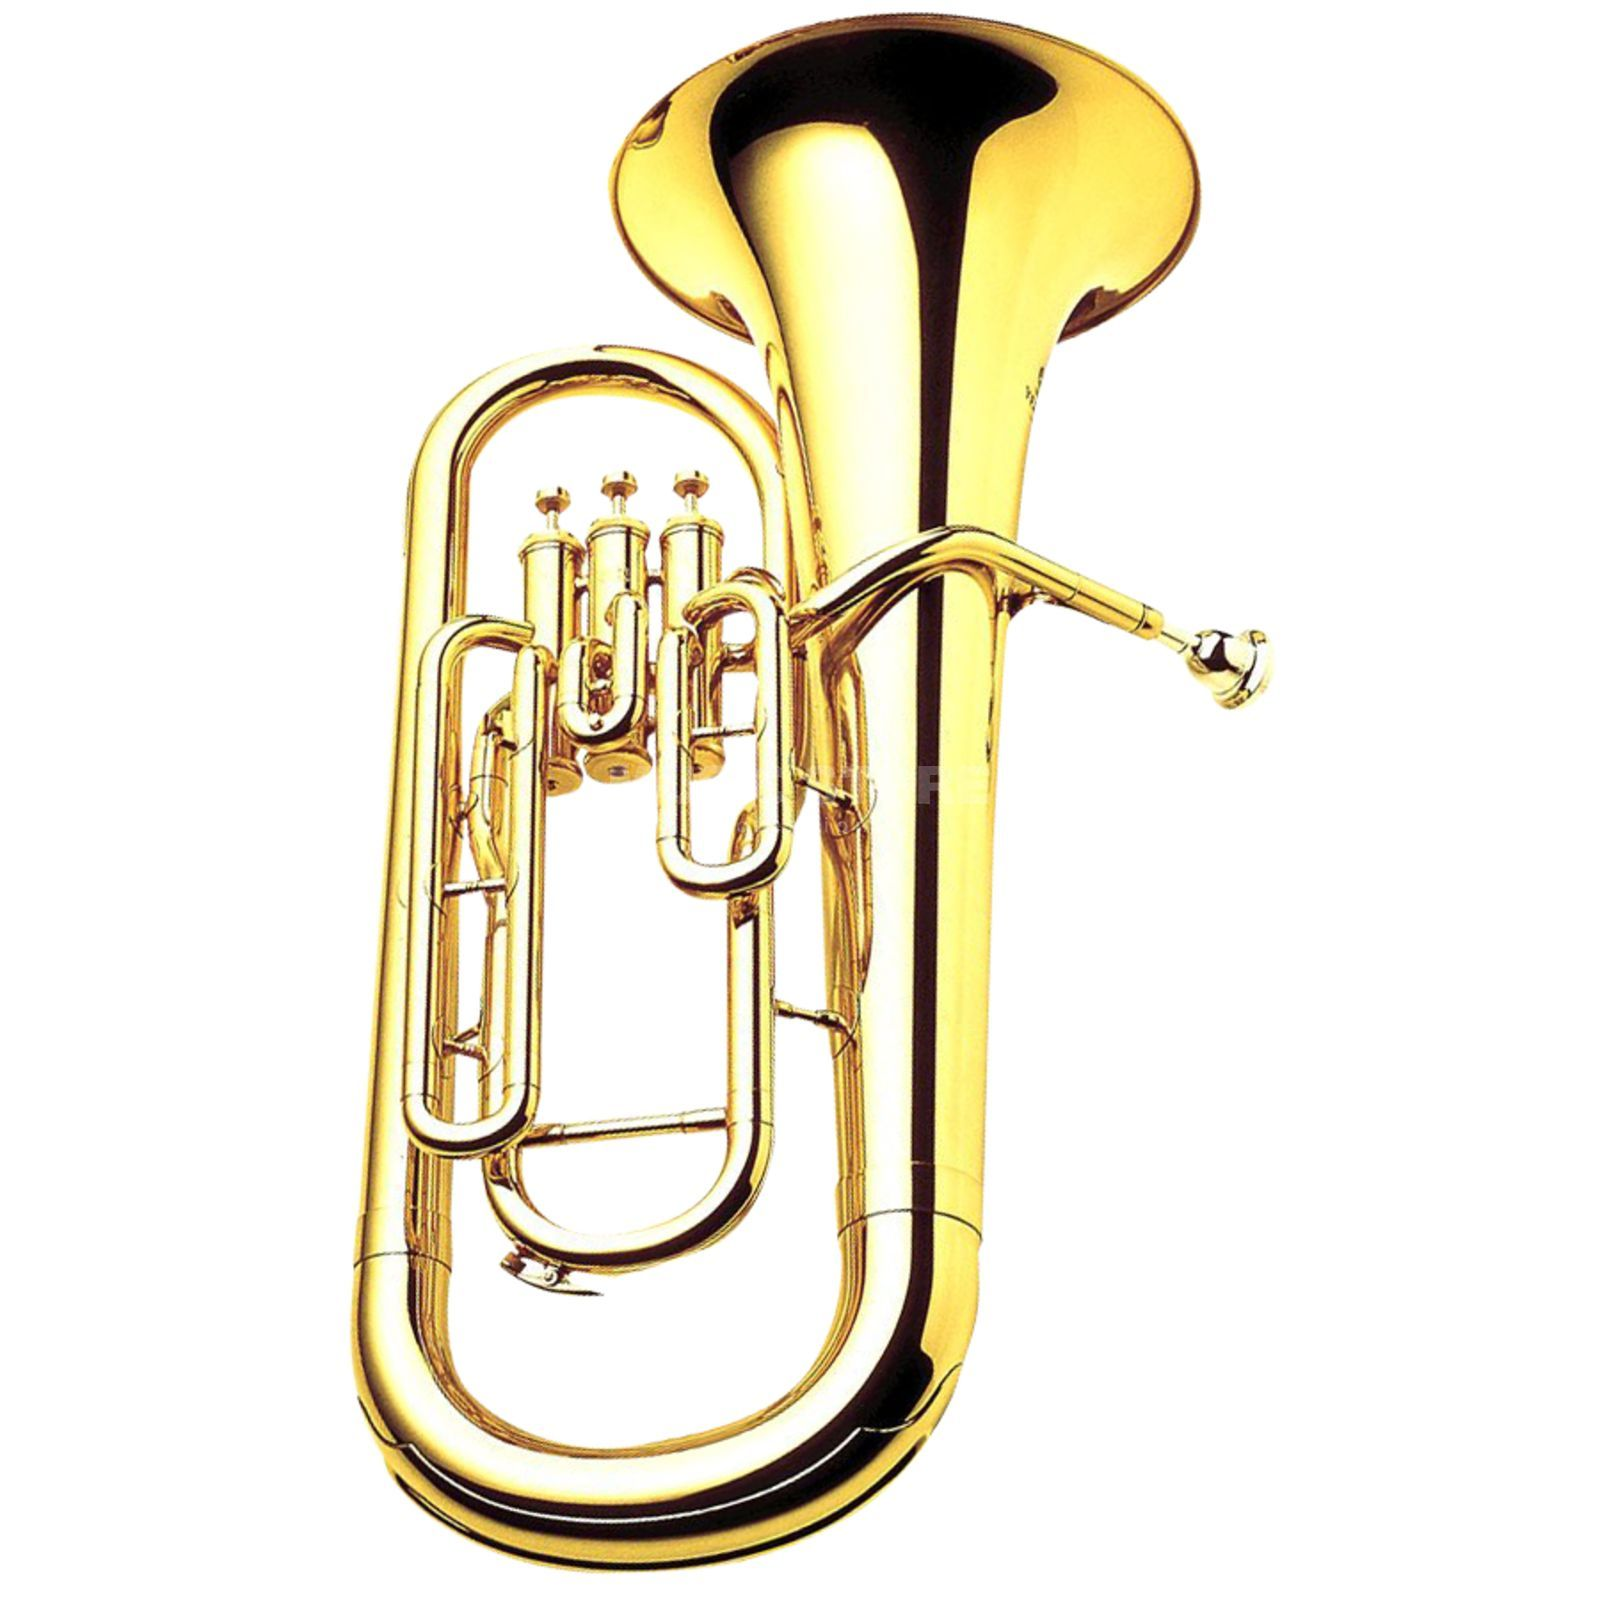 Yamaha YEP-201 Bb-Euphonium Three Valves, Lacquered Zdjęcie produktu